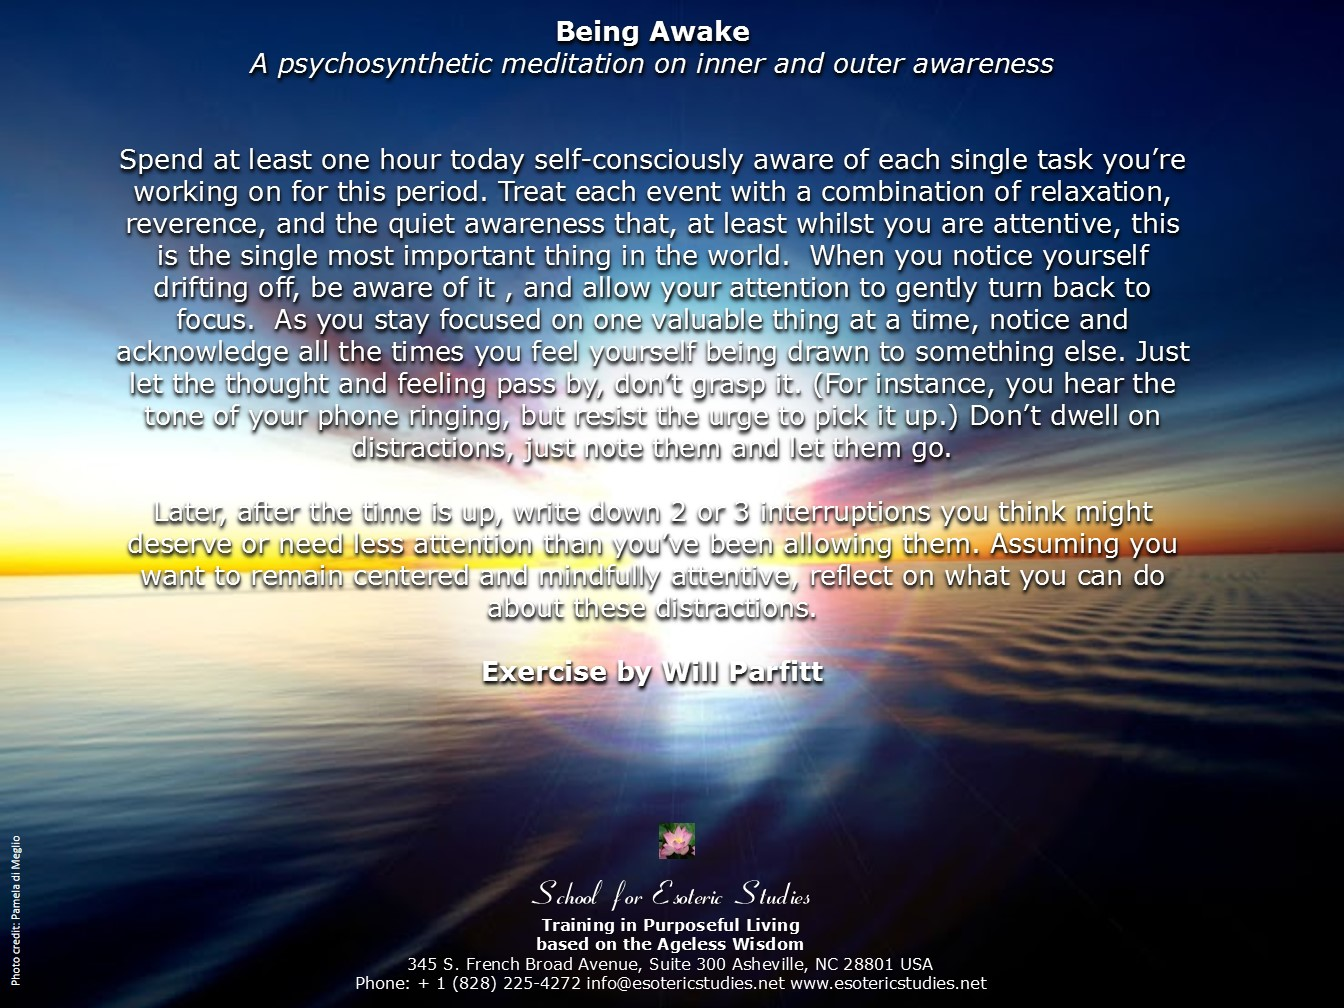 Psychosynthesis exercise for increasing awareness